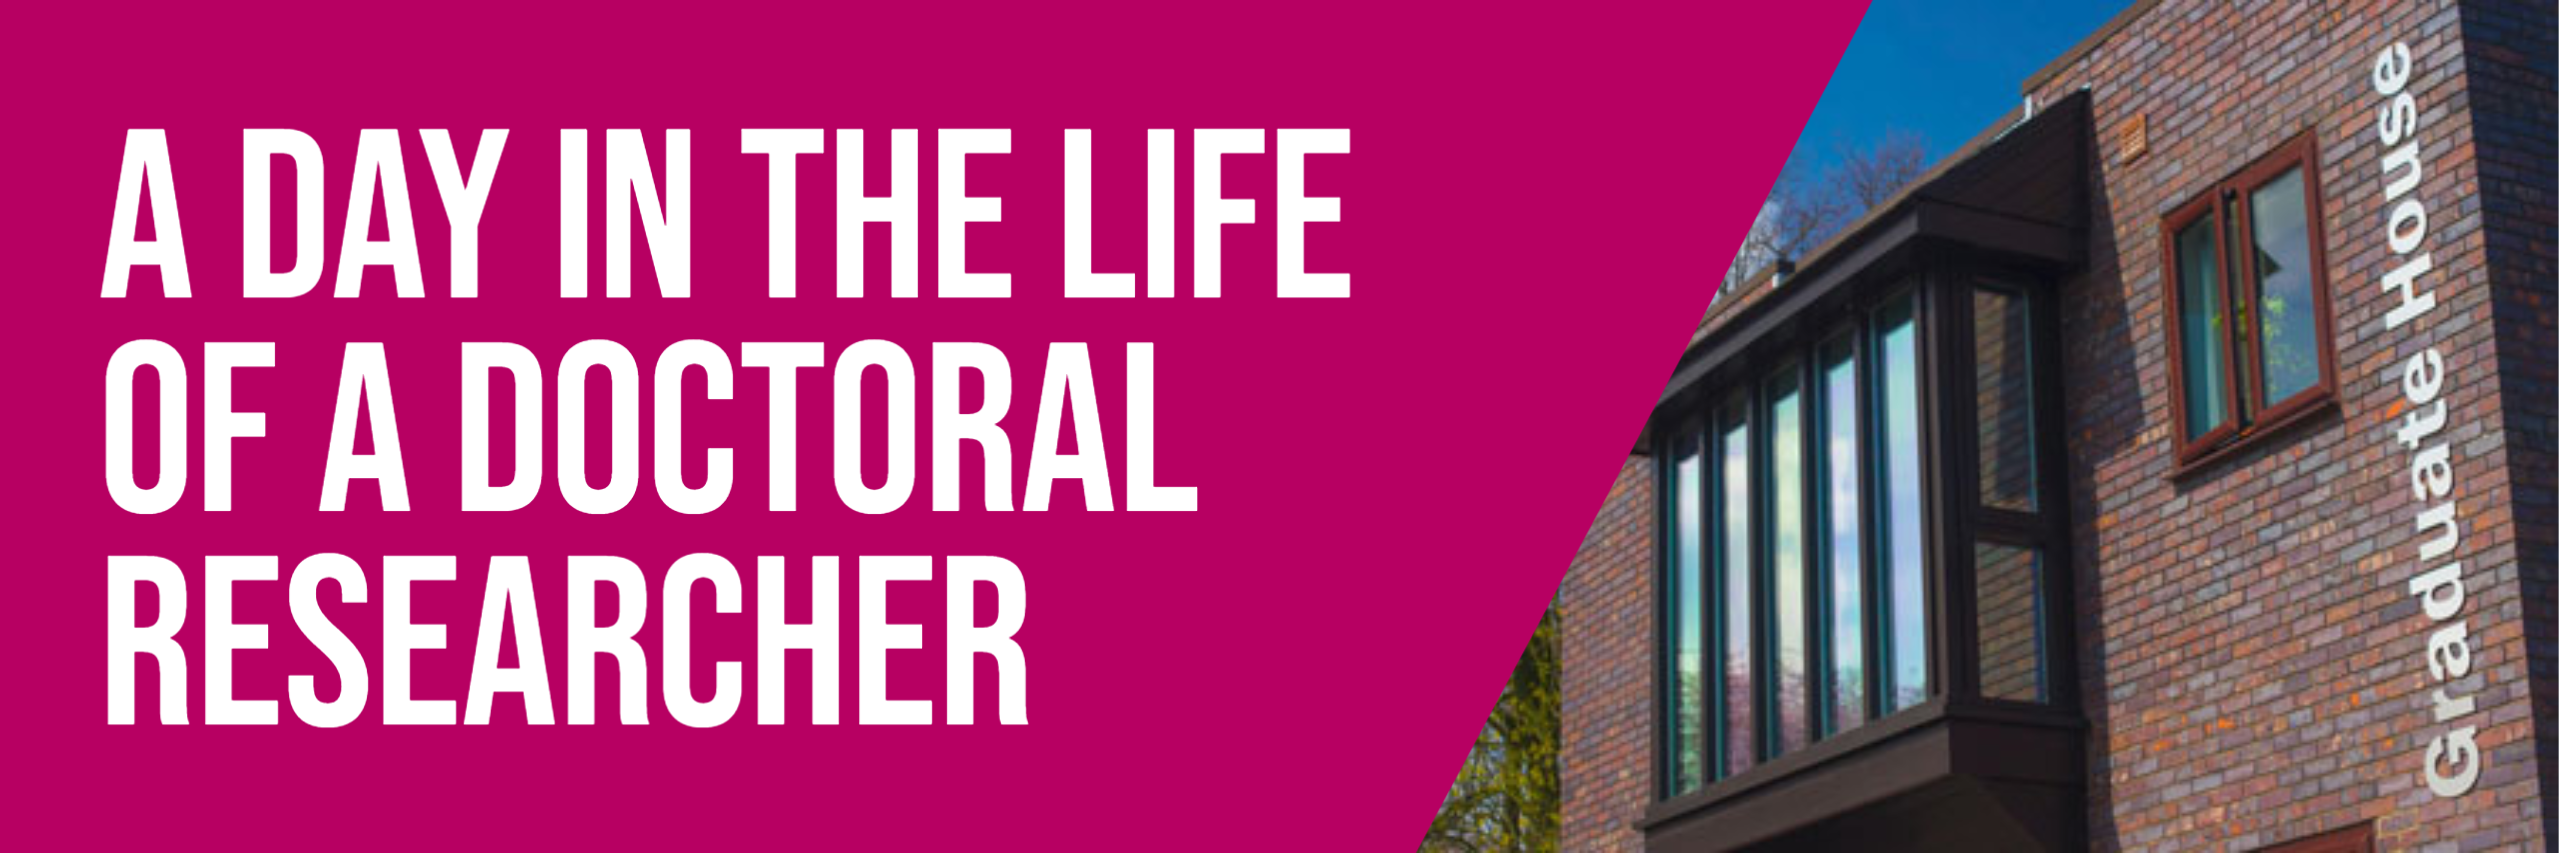 Reflecting on 'A Day in the Life of a Doctoral Researcher' 2020